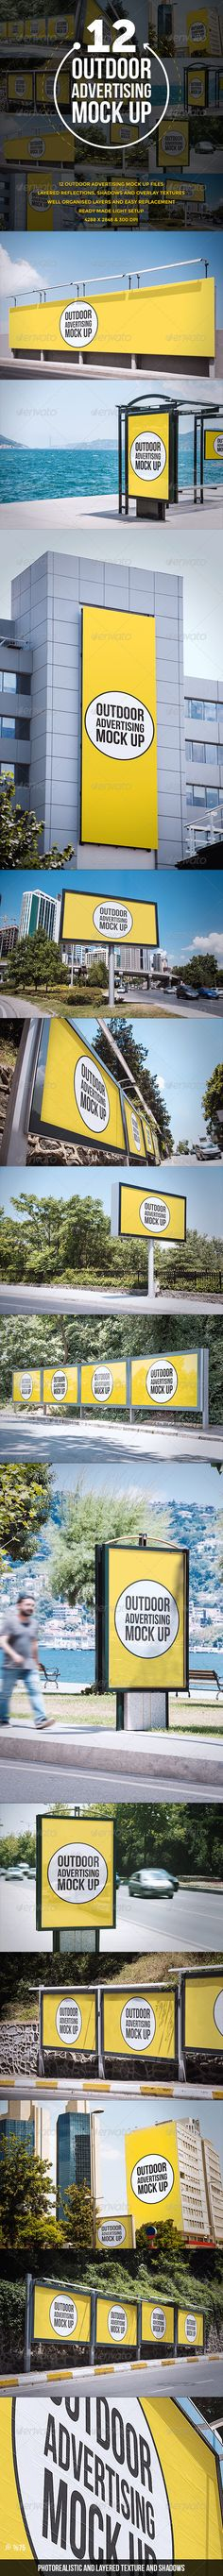 Outdoor Advertising Mock Up — Photoshop PSD #mock-up #showcase • Available here → https://graphicriver.net/item/outdoor-advertising-mock-up/8787067?ref=pxcr